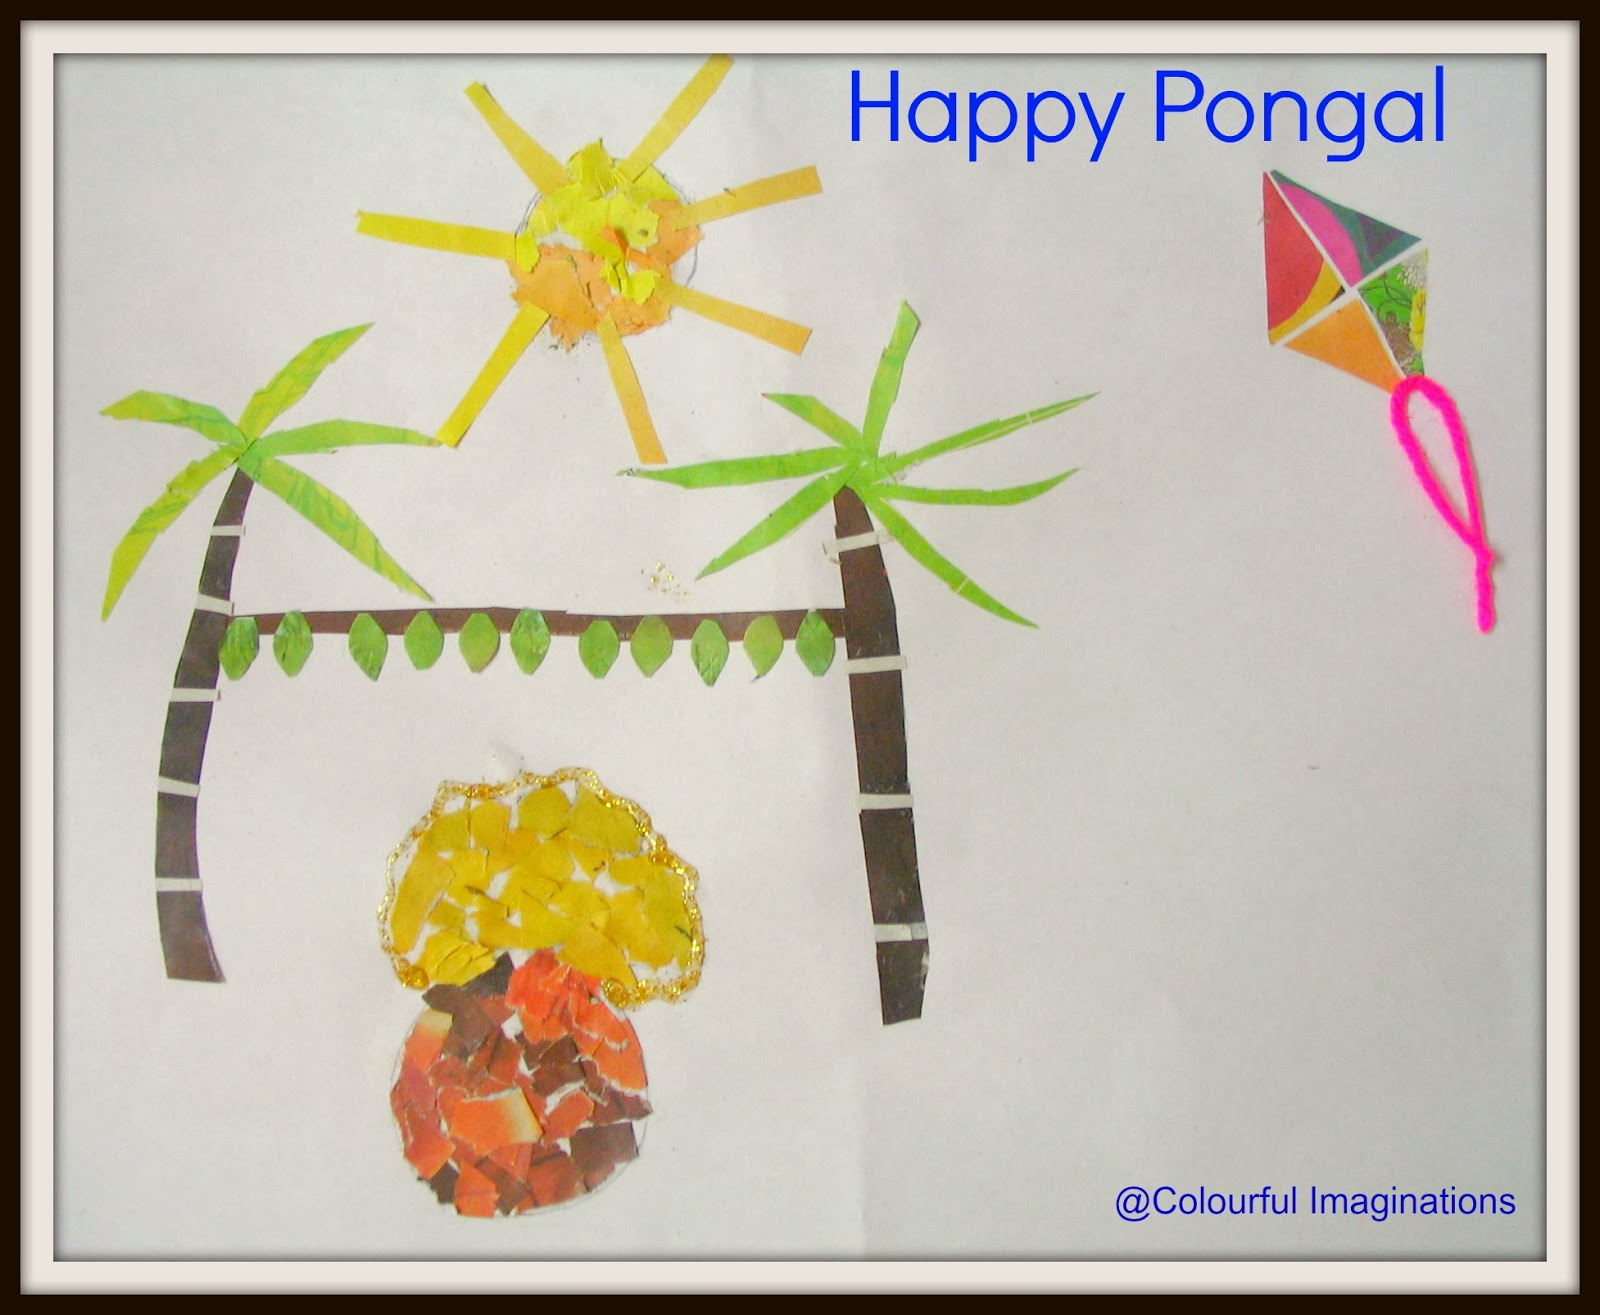 pongal festival essay for kids Pongal in india pongal, which is celebrated in countries such as india therefore pongal became a harvest festival pongal has many regional names.